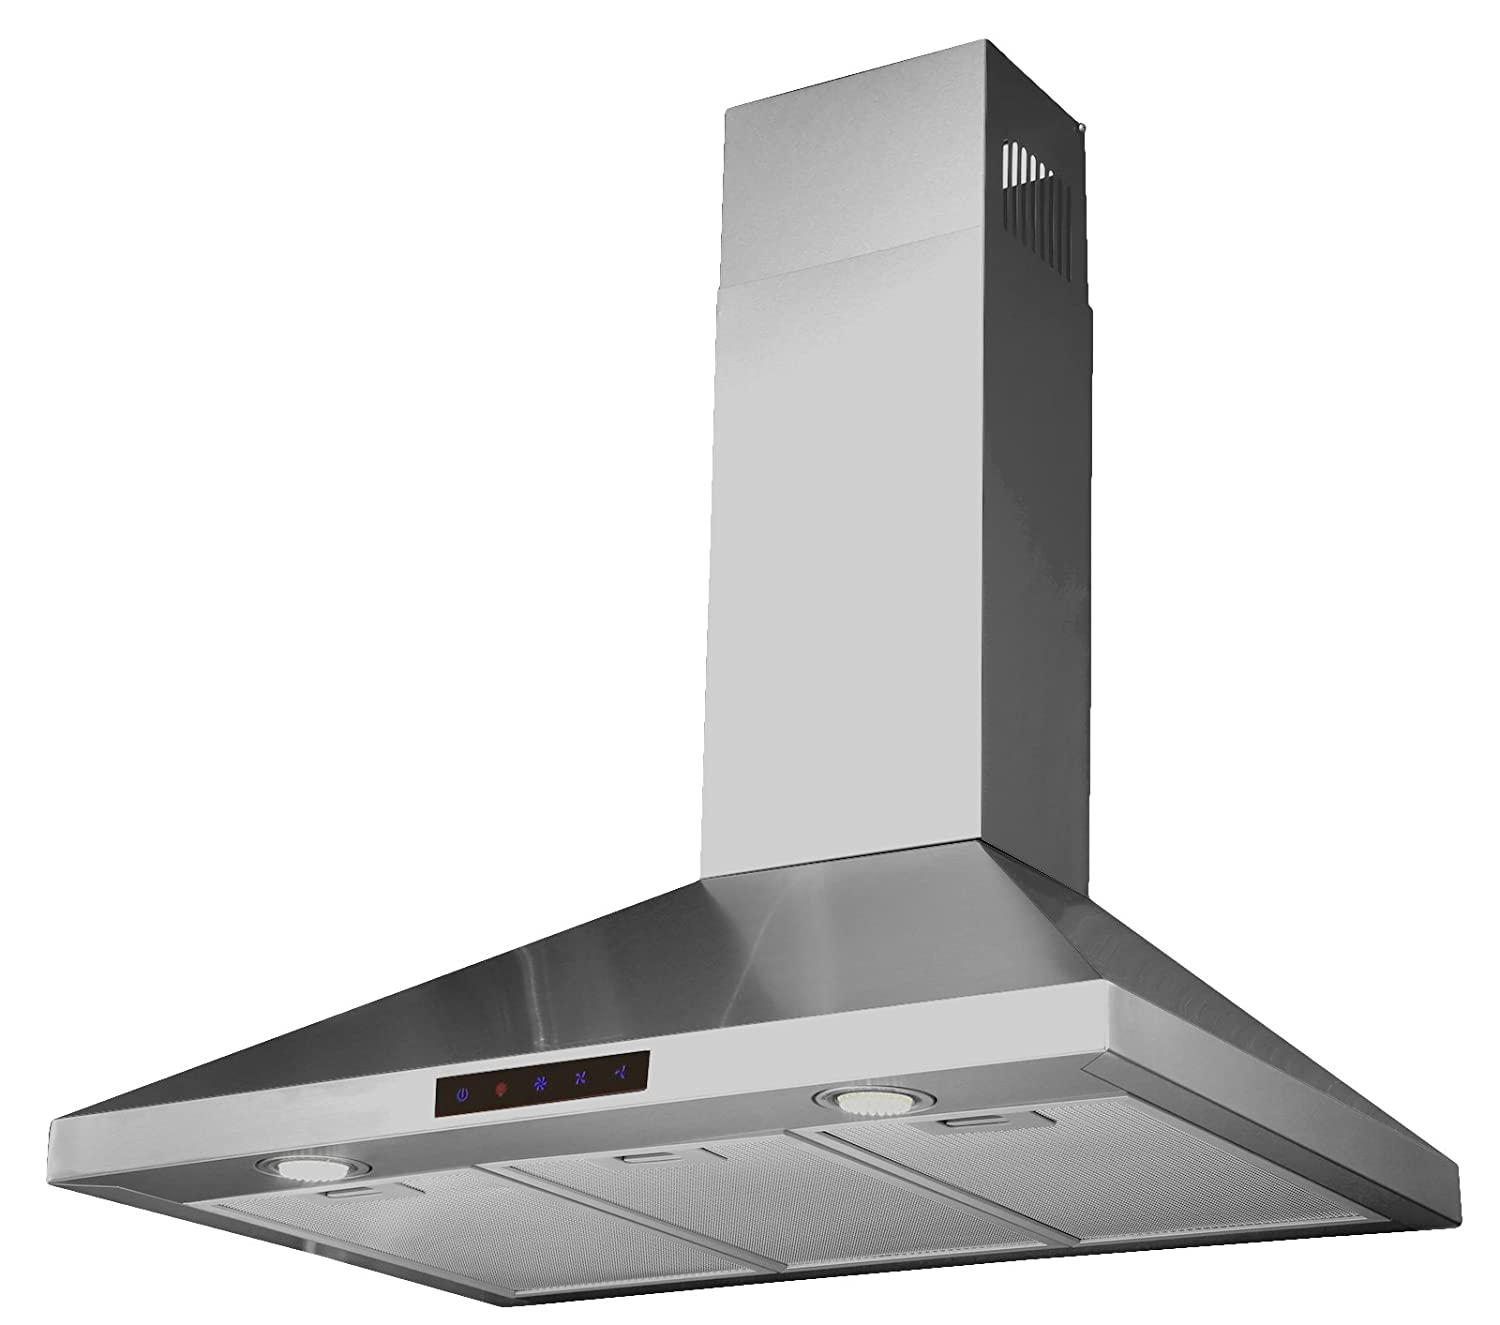 Kitchen Bath Collection STL75-LED: the high-end range hood with reasonable price